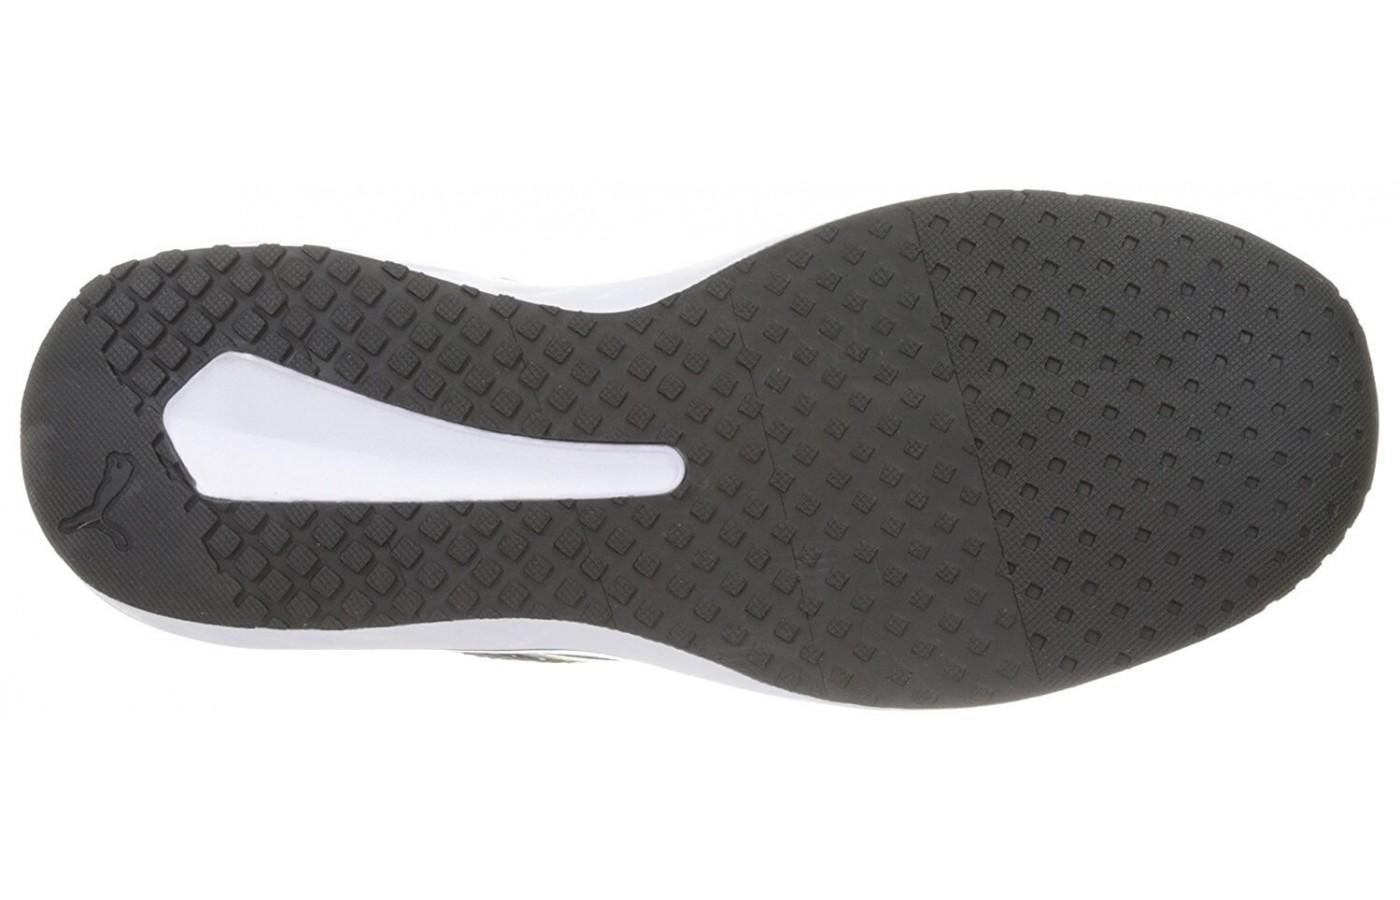 The Puma Flare has a carbon rubber outsole